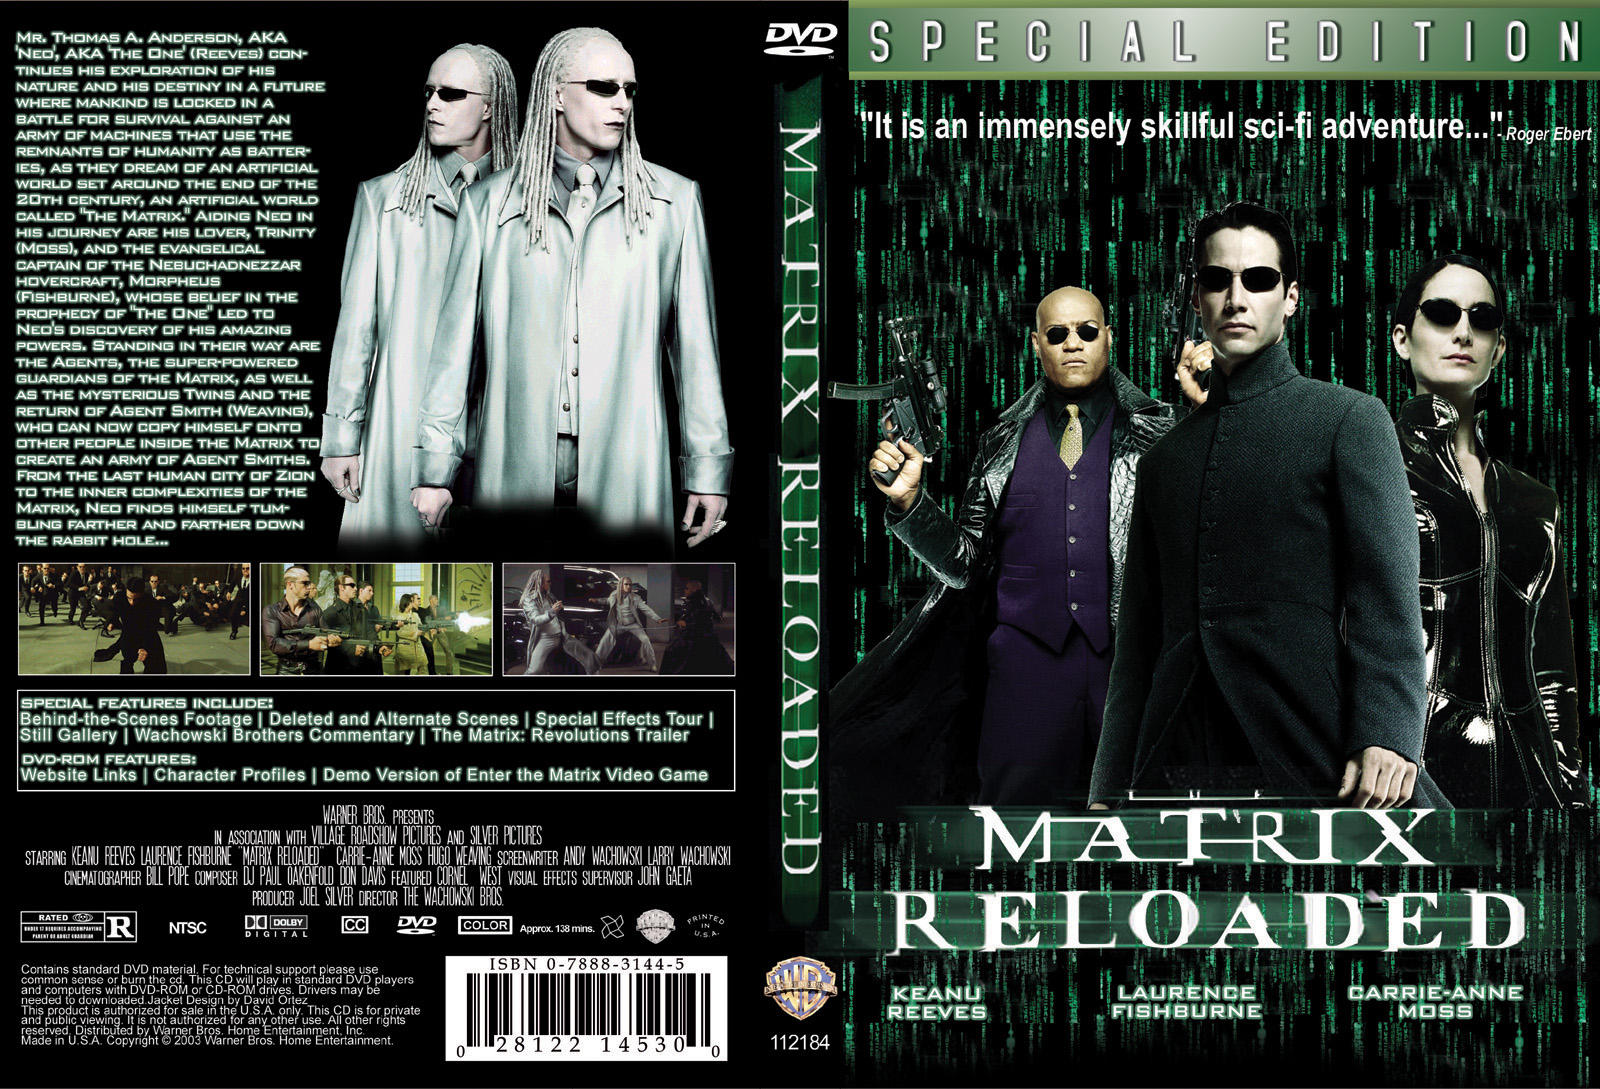 a review of the film the matrix Summary: the matrix was a pathbreaking film, marking the start of a new era in hollywood few reviews do it justice, usually ignoring the philosophy underlying the story.